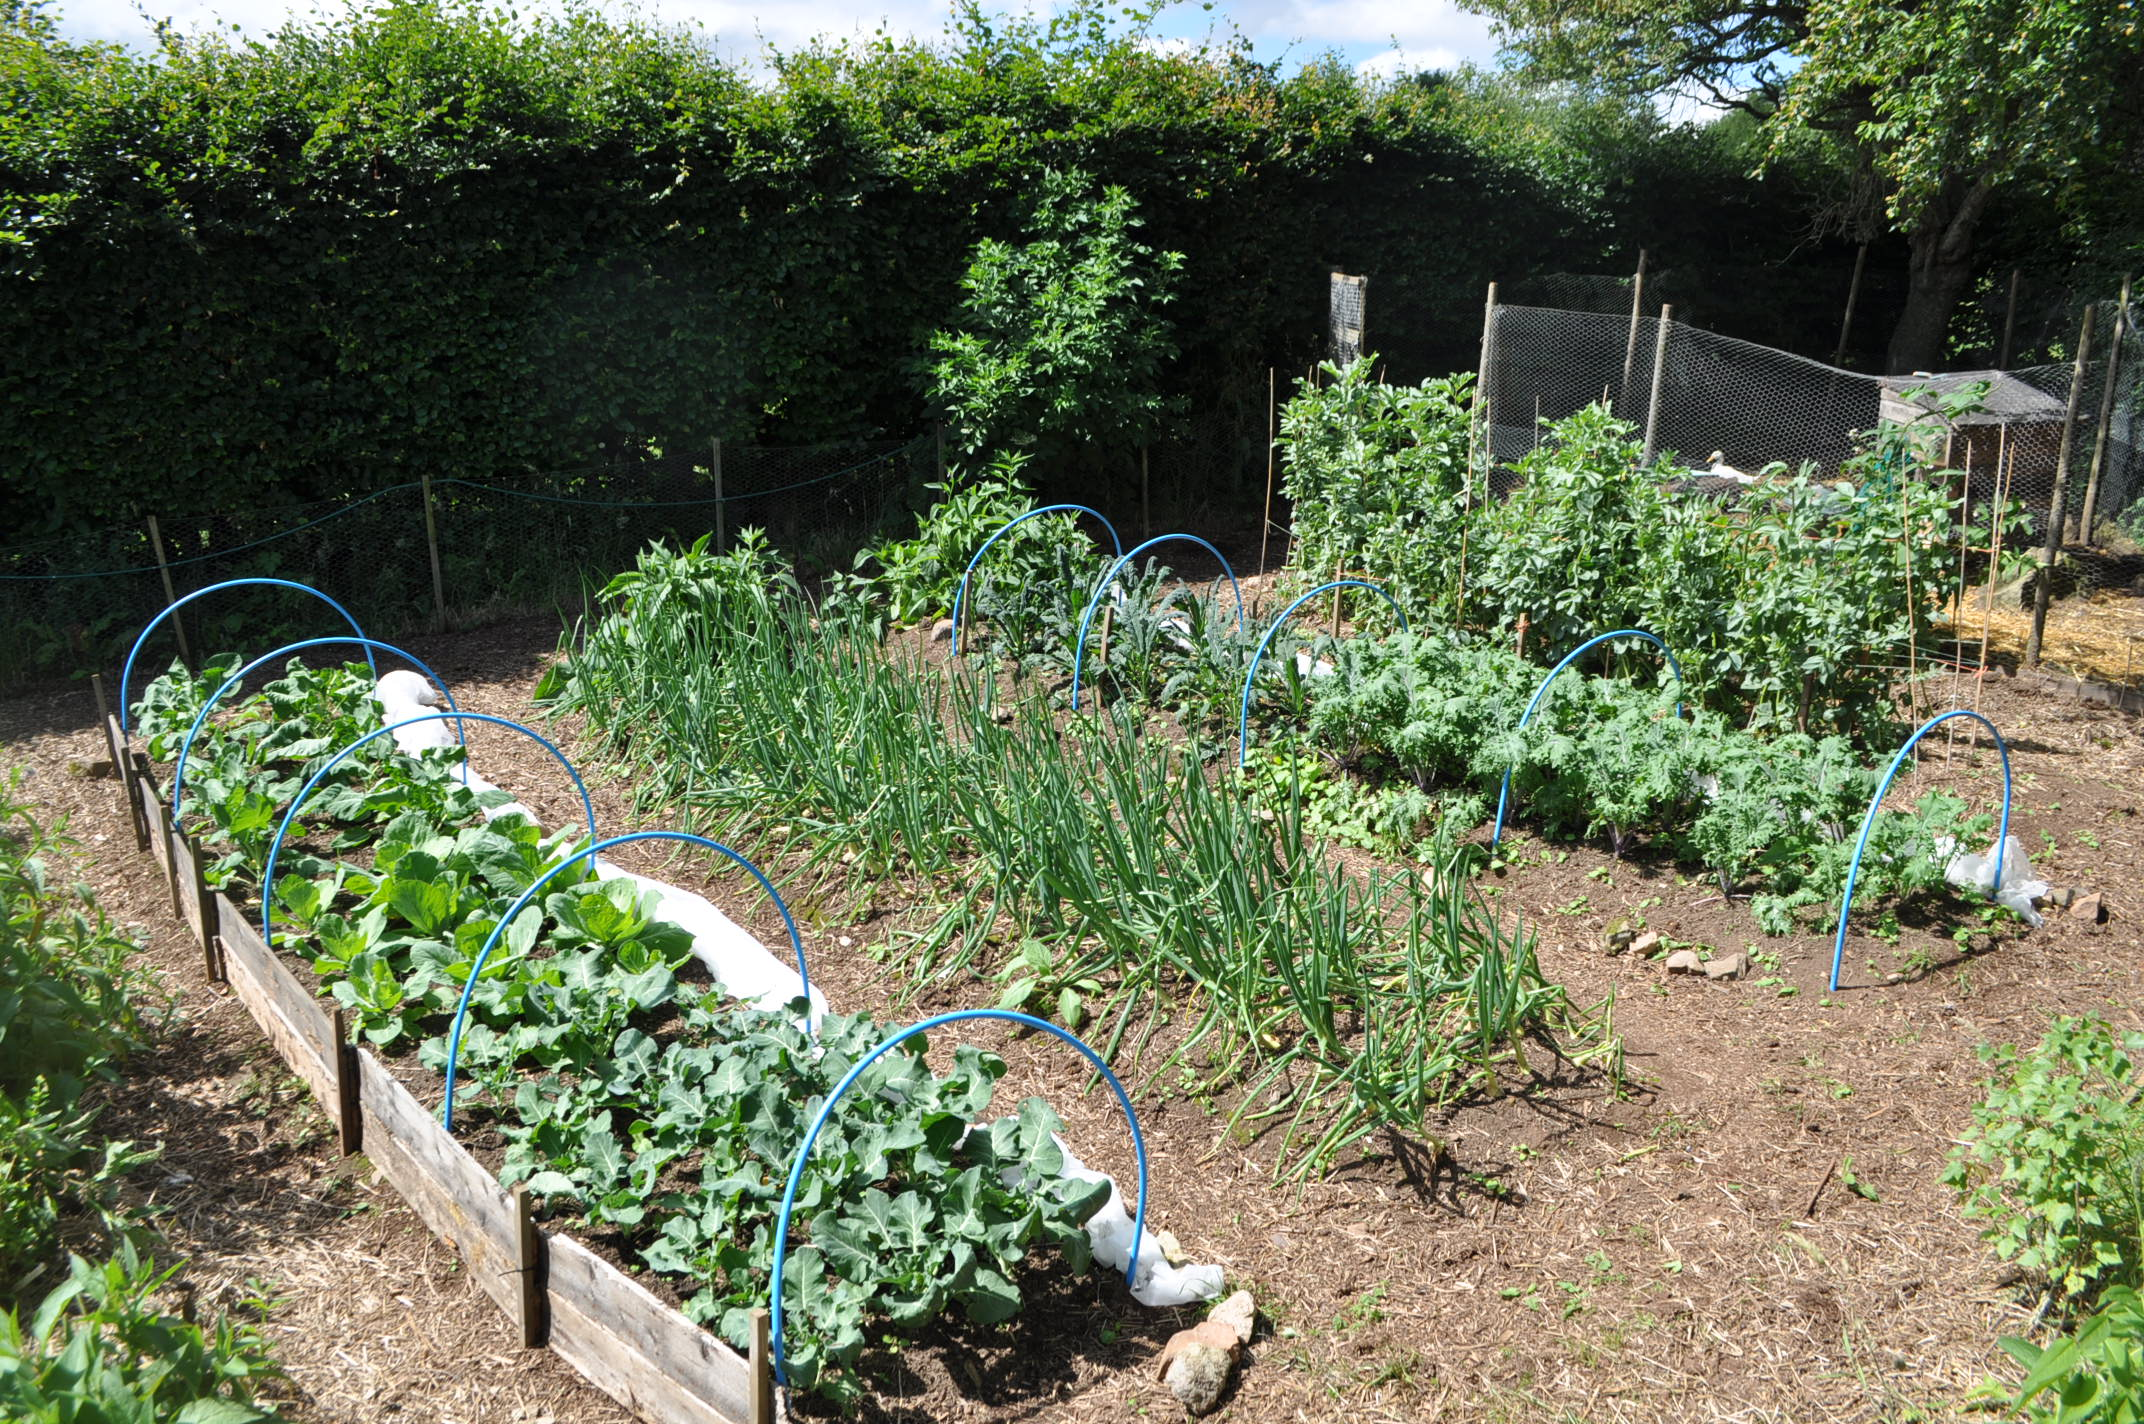 Kitchen Garden Farm Ducks In A Permaculture System Tap O Noth Farm